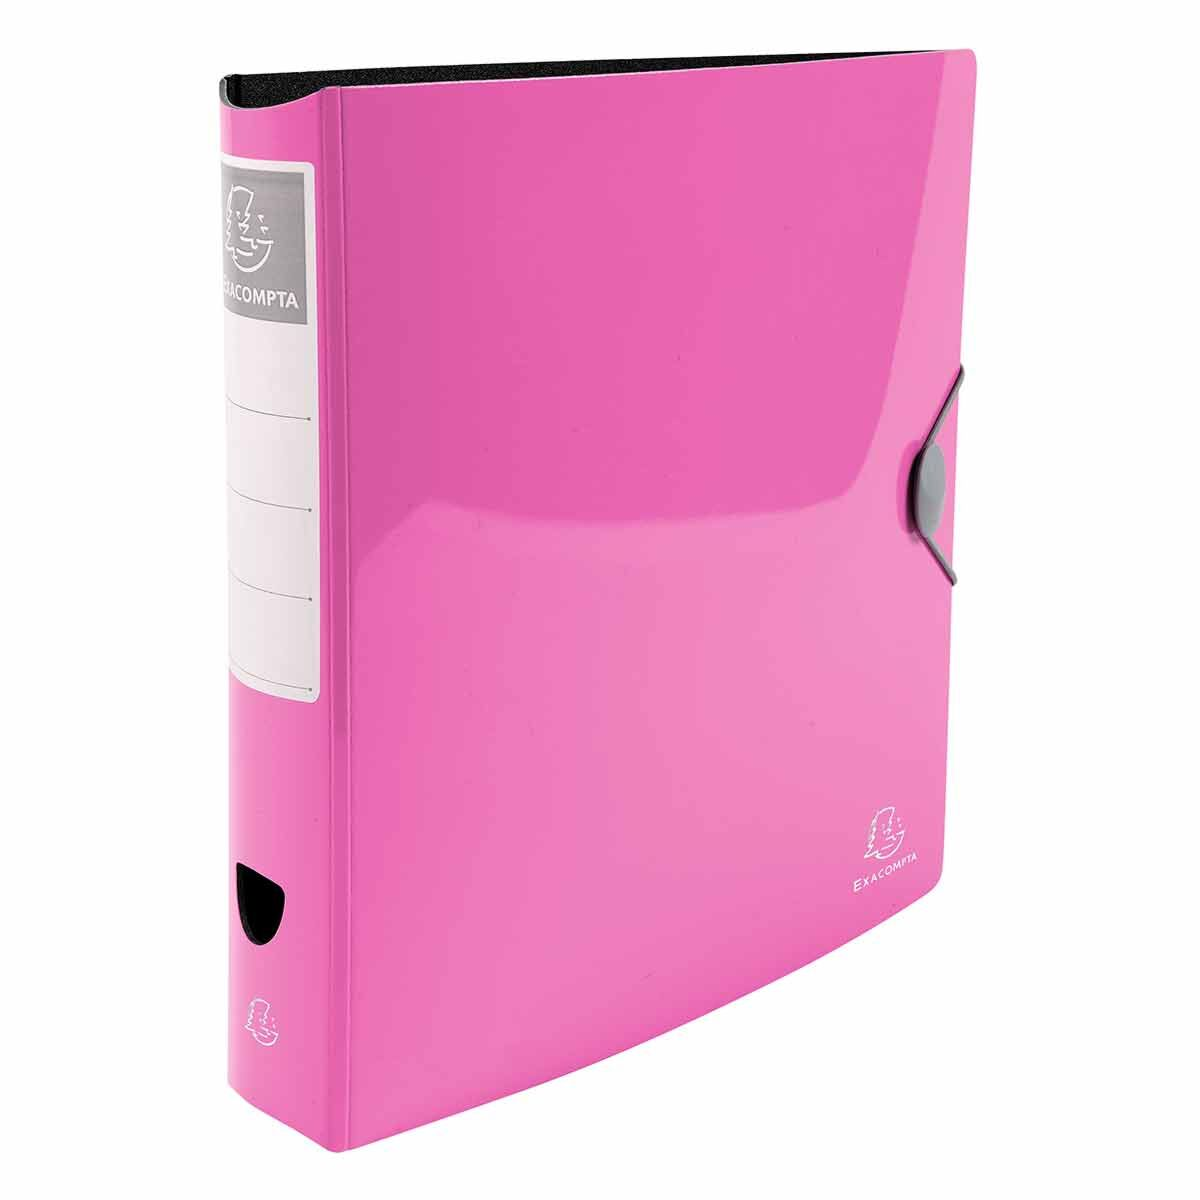 Exacompta Iderama Glossy Lever Arch File A4 PP 75mm Pack of 6 Pink